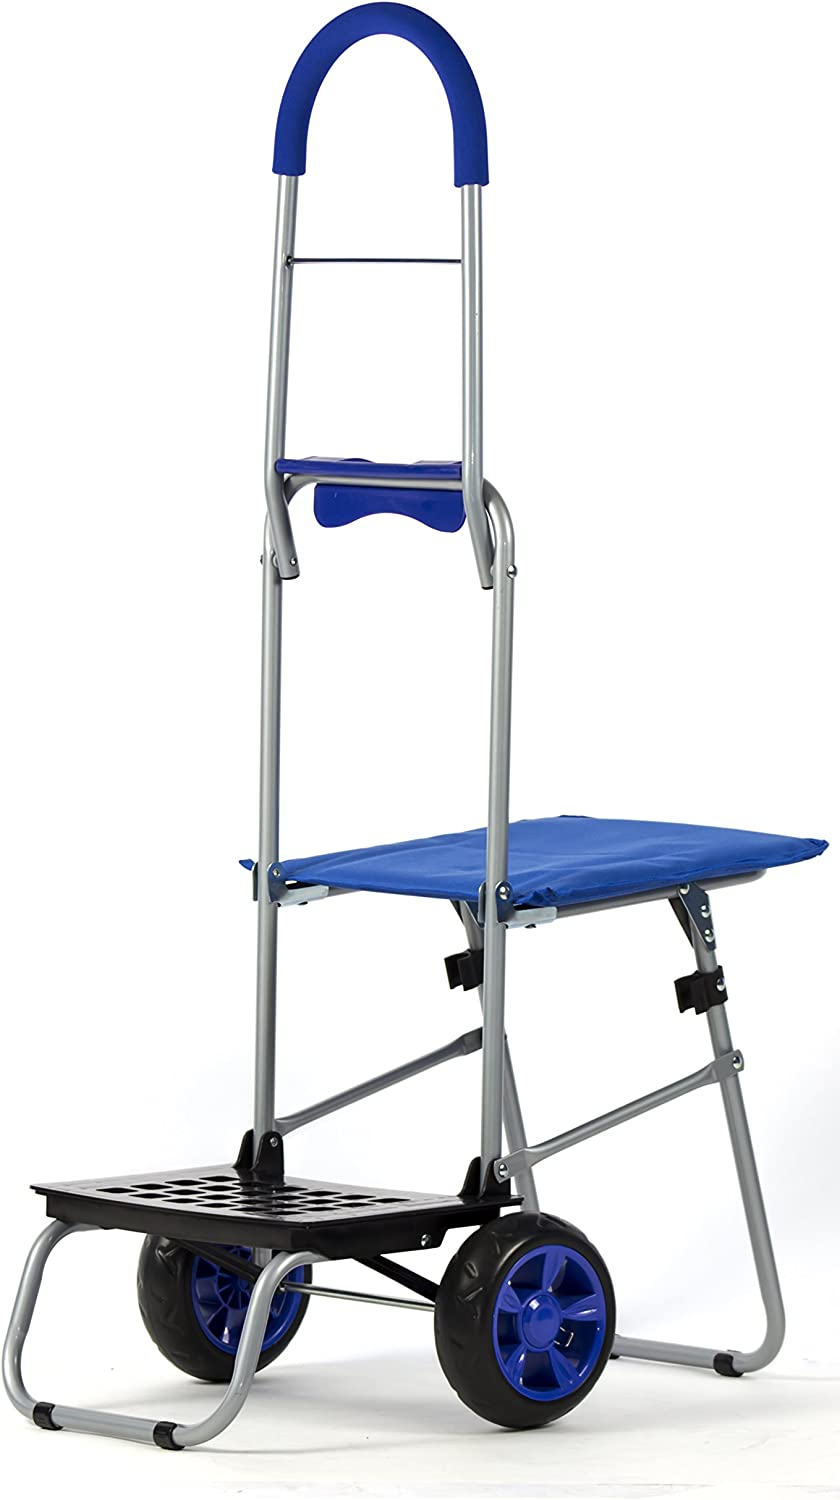 dbest products Mighty Max with Seat Personal Dolly, Blue Handtruck Cart Hardware Garden Utilty